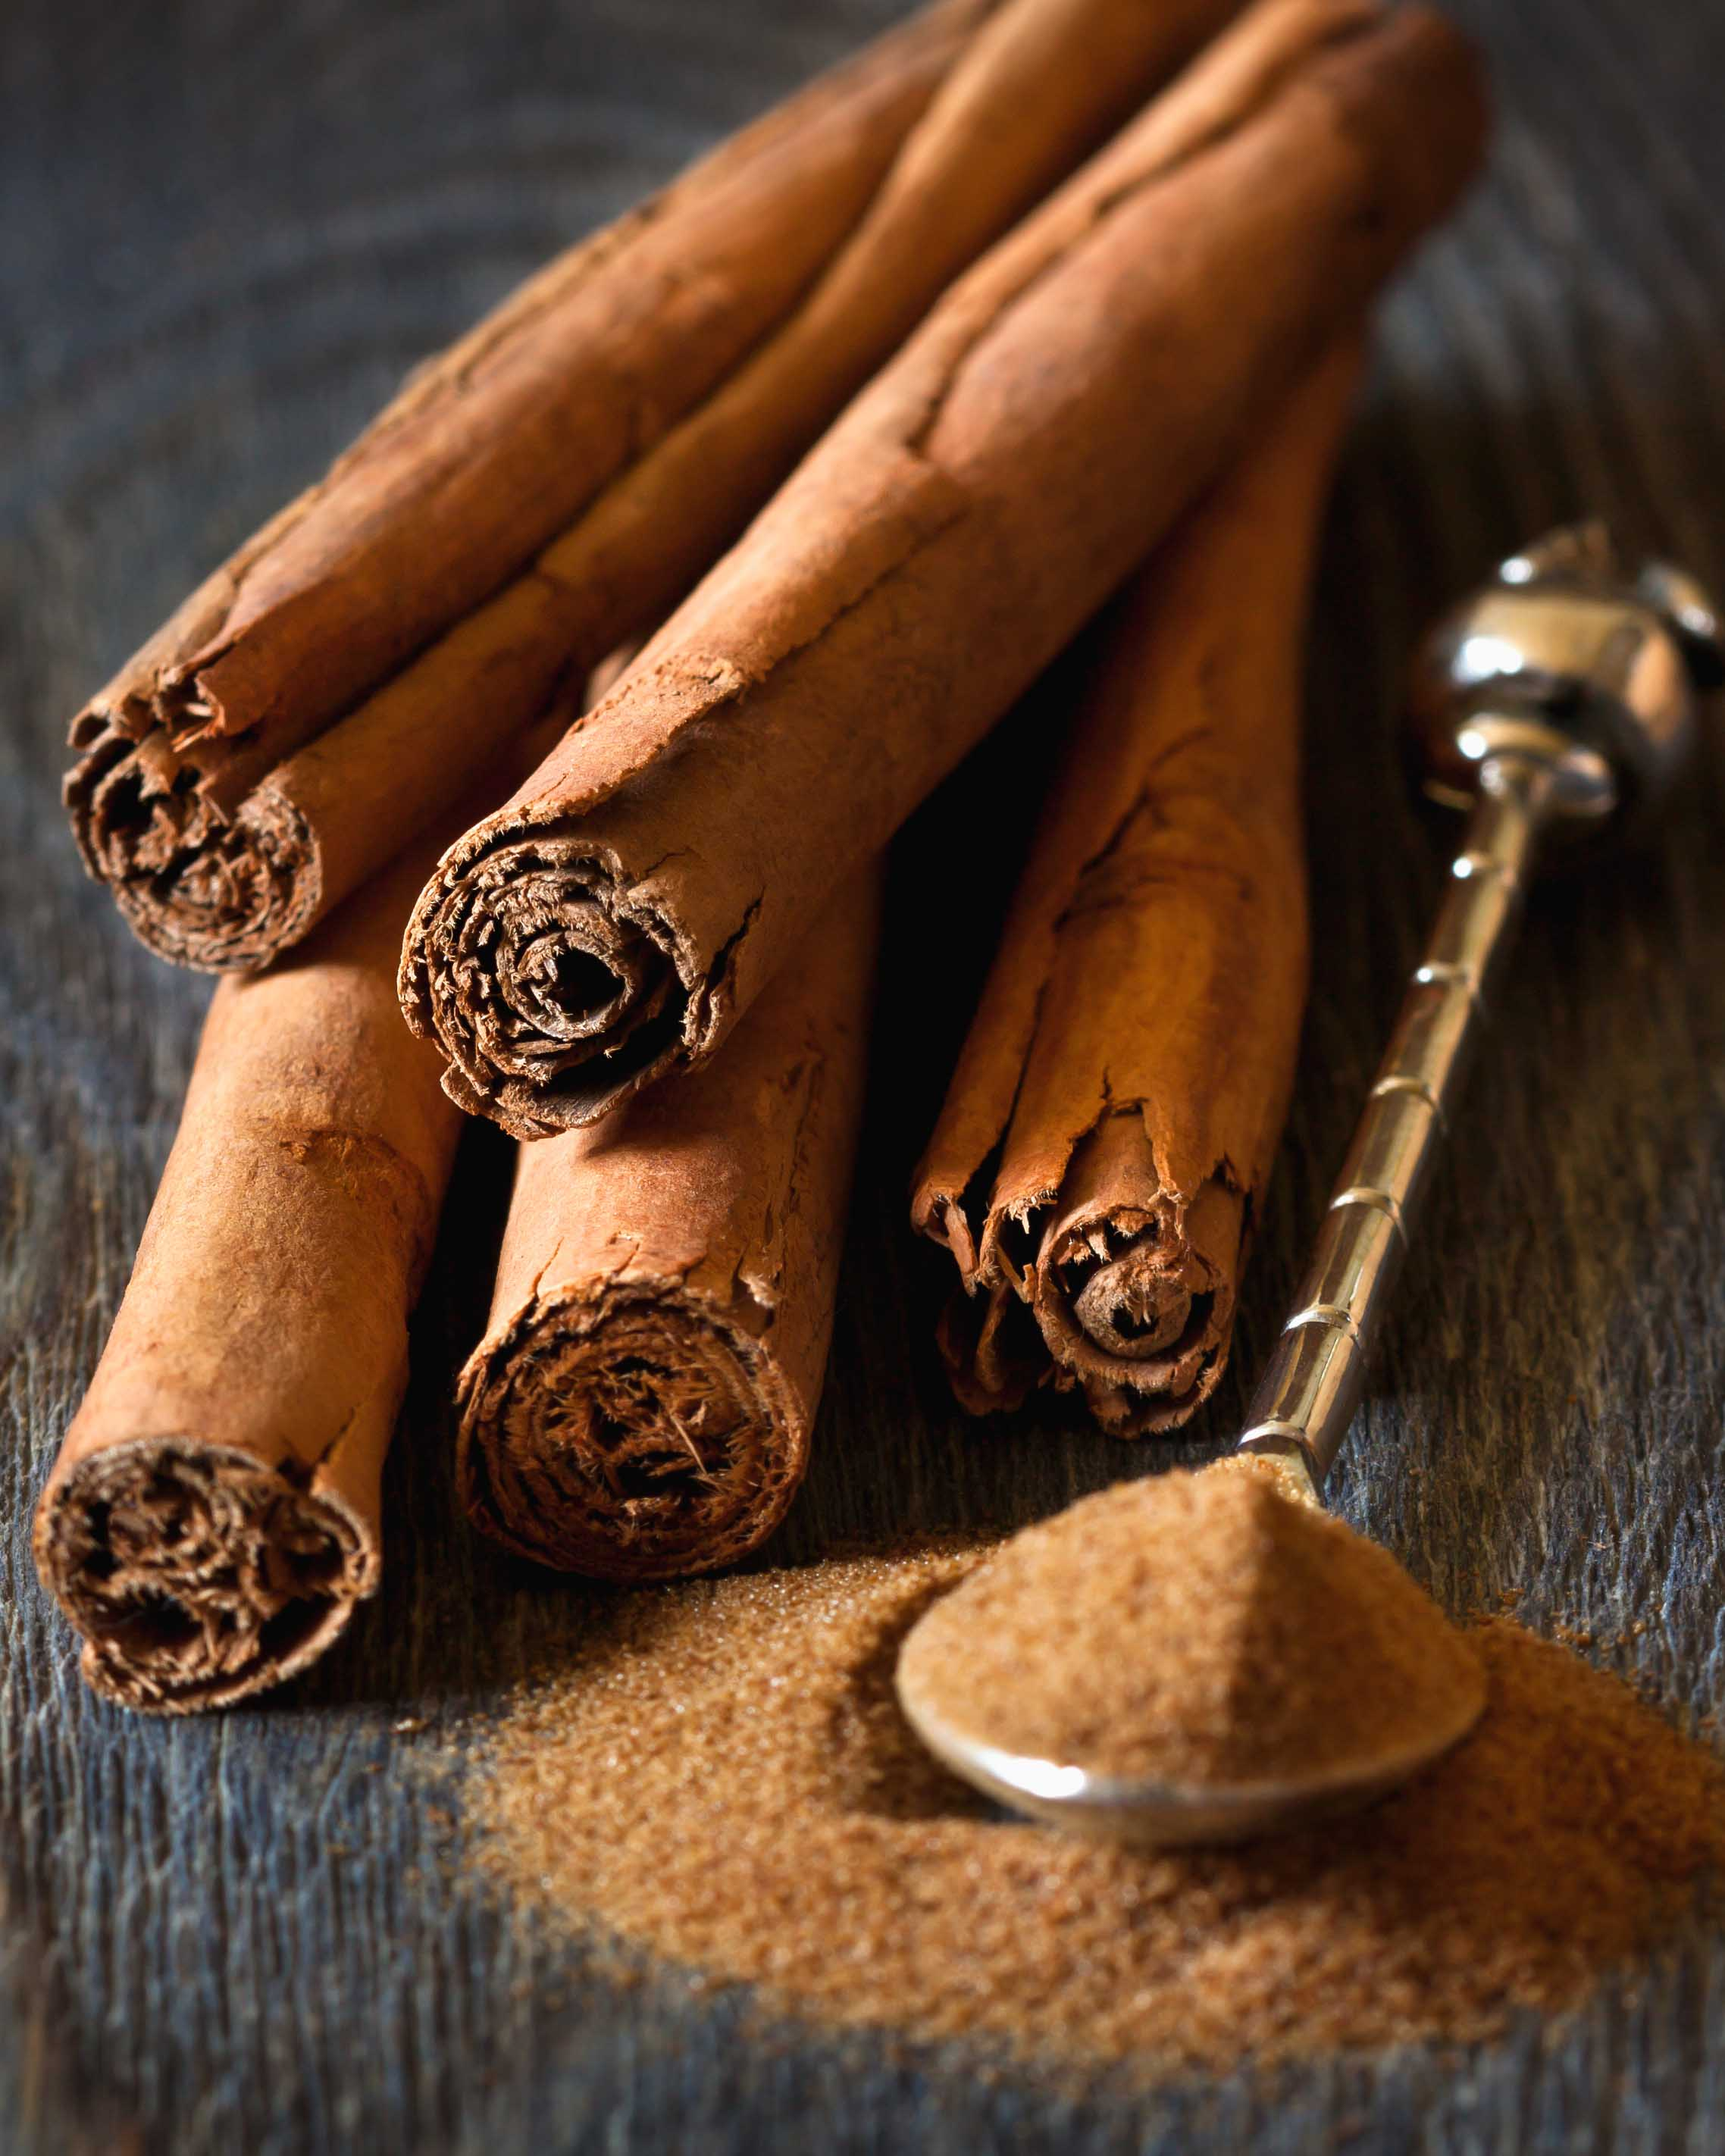 Ceylon (TRUE) Cinnamon Sticks